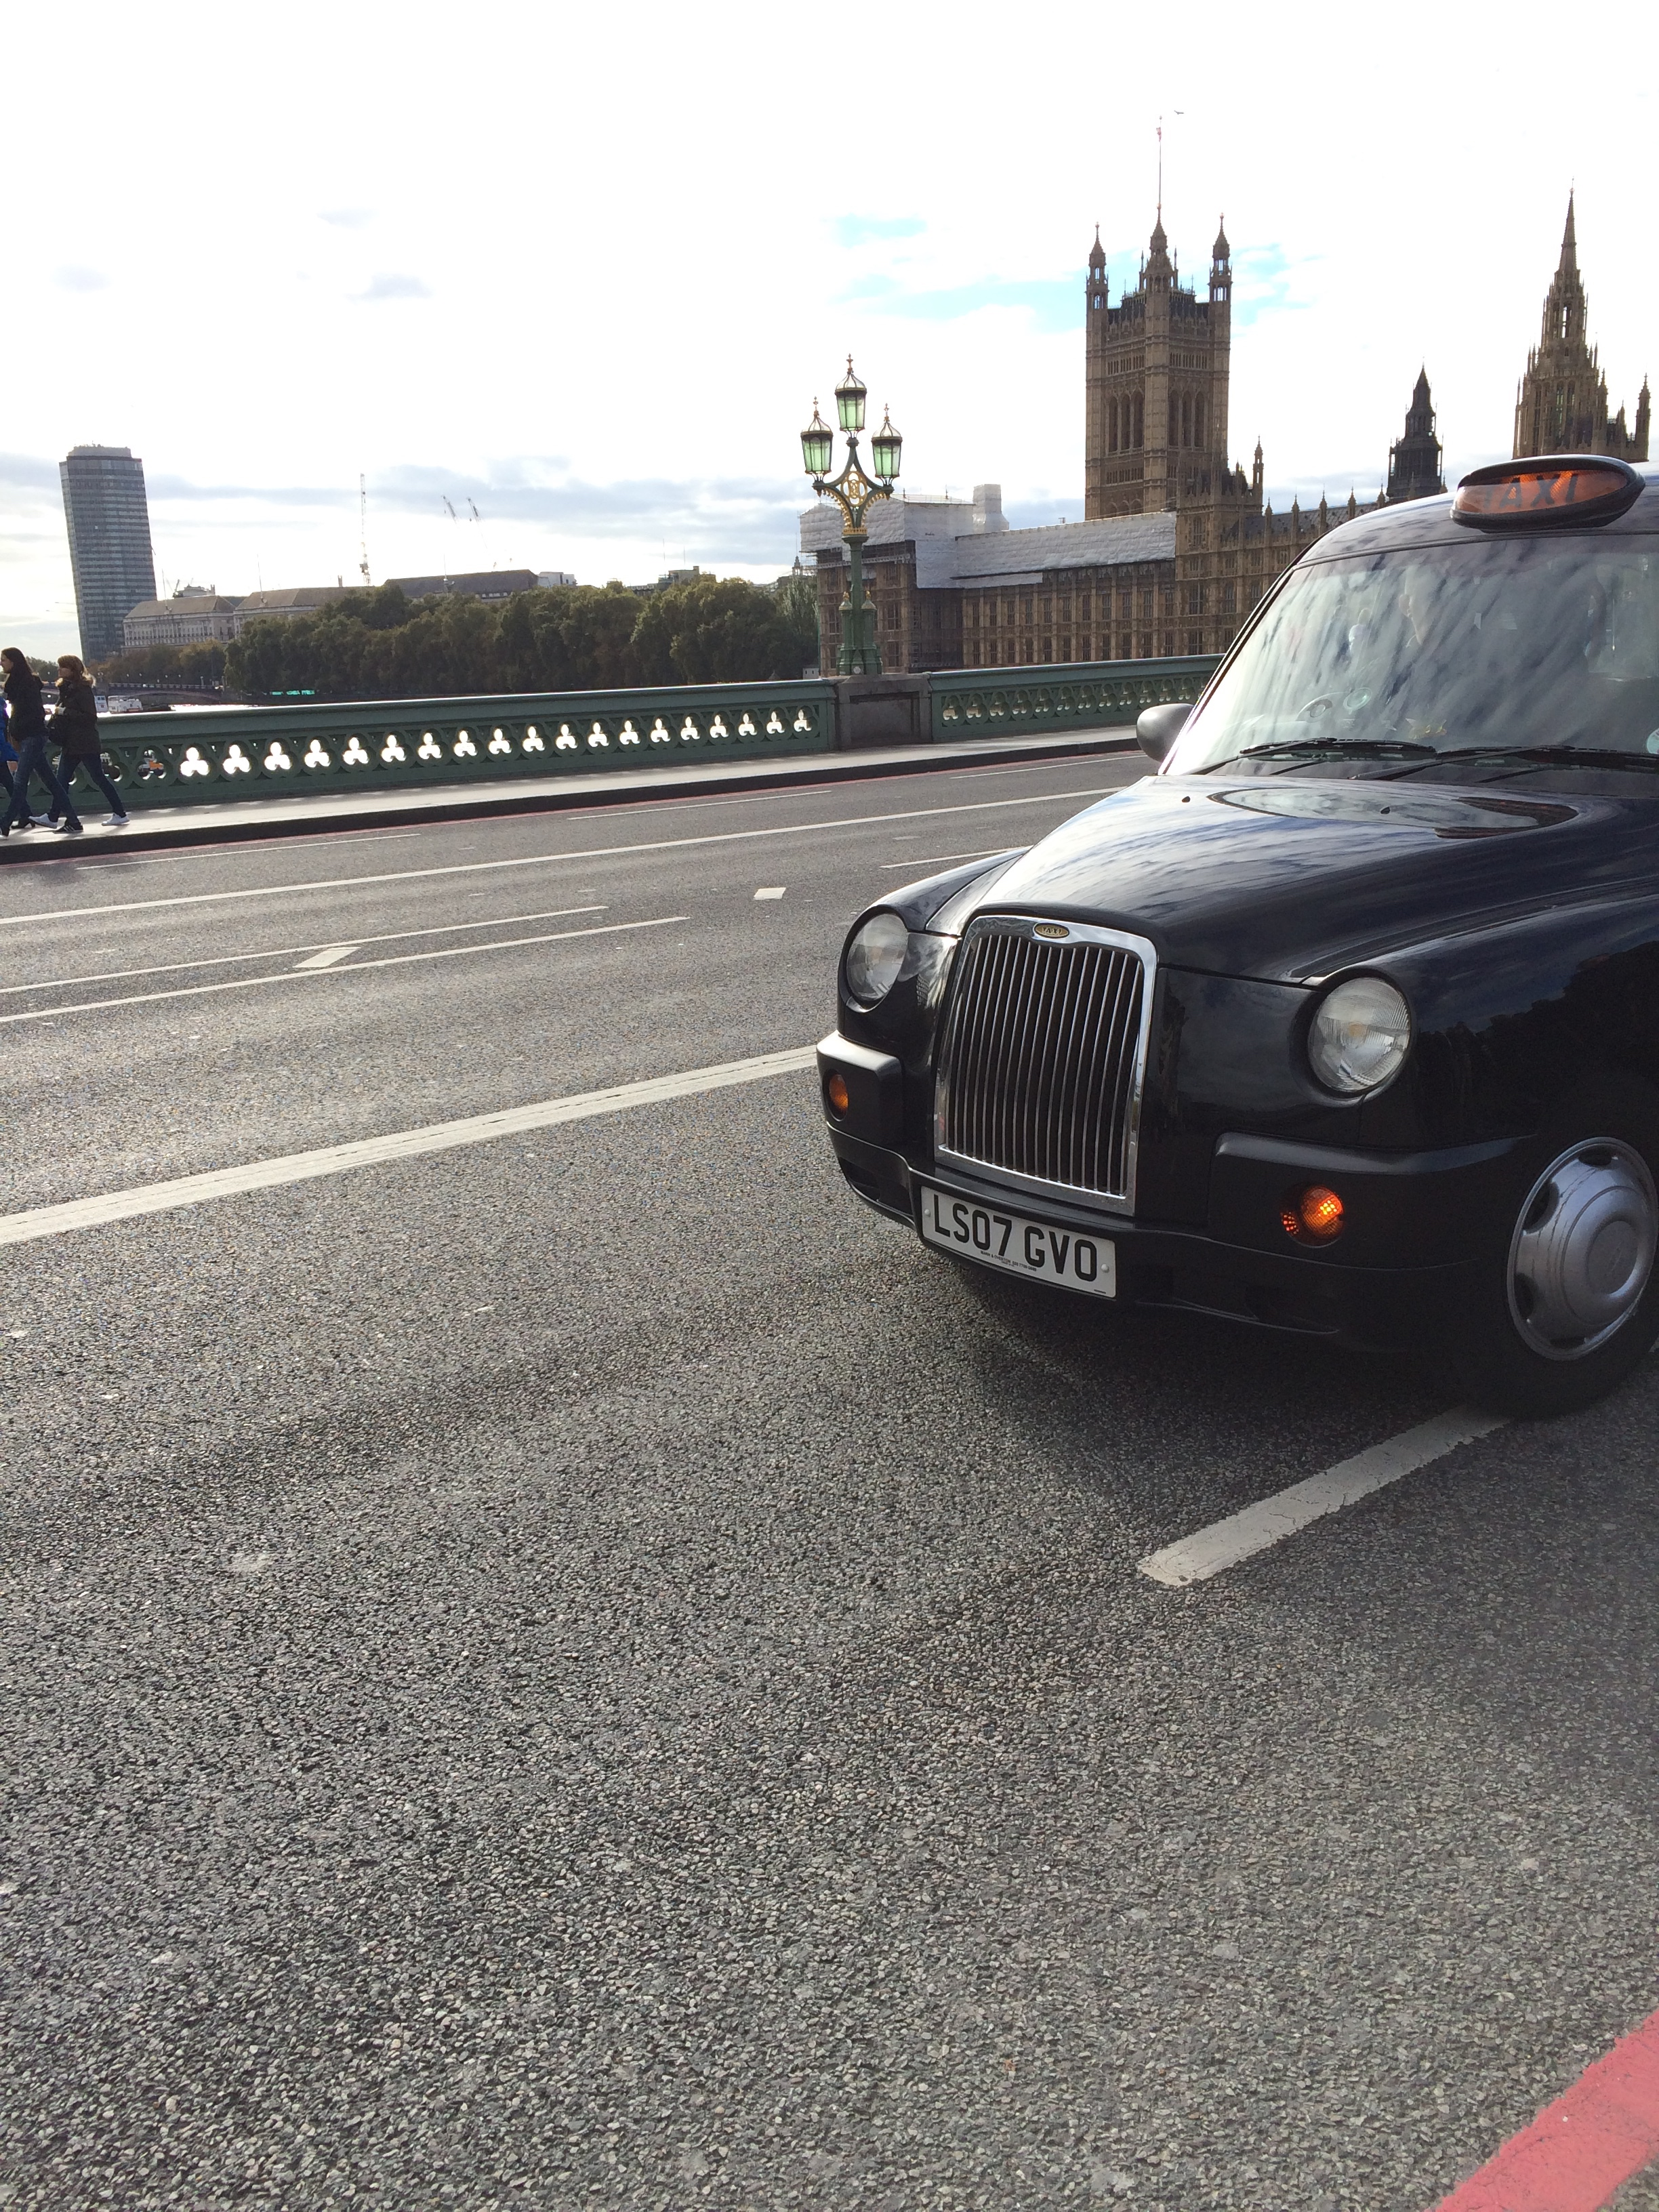 cabs & cabbies. delightful.